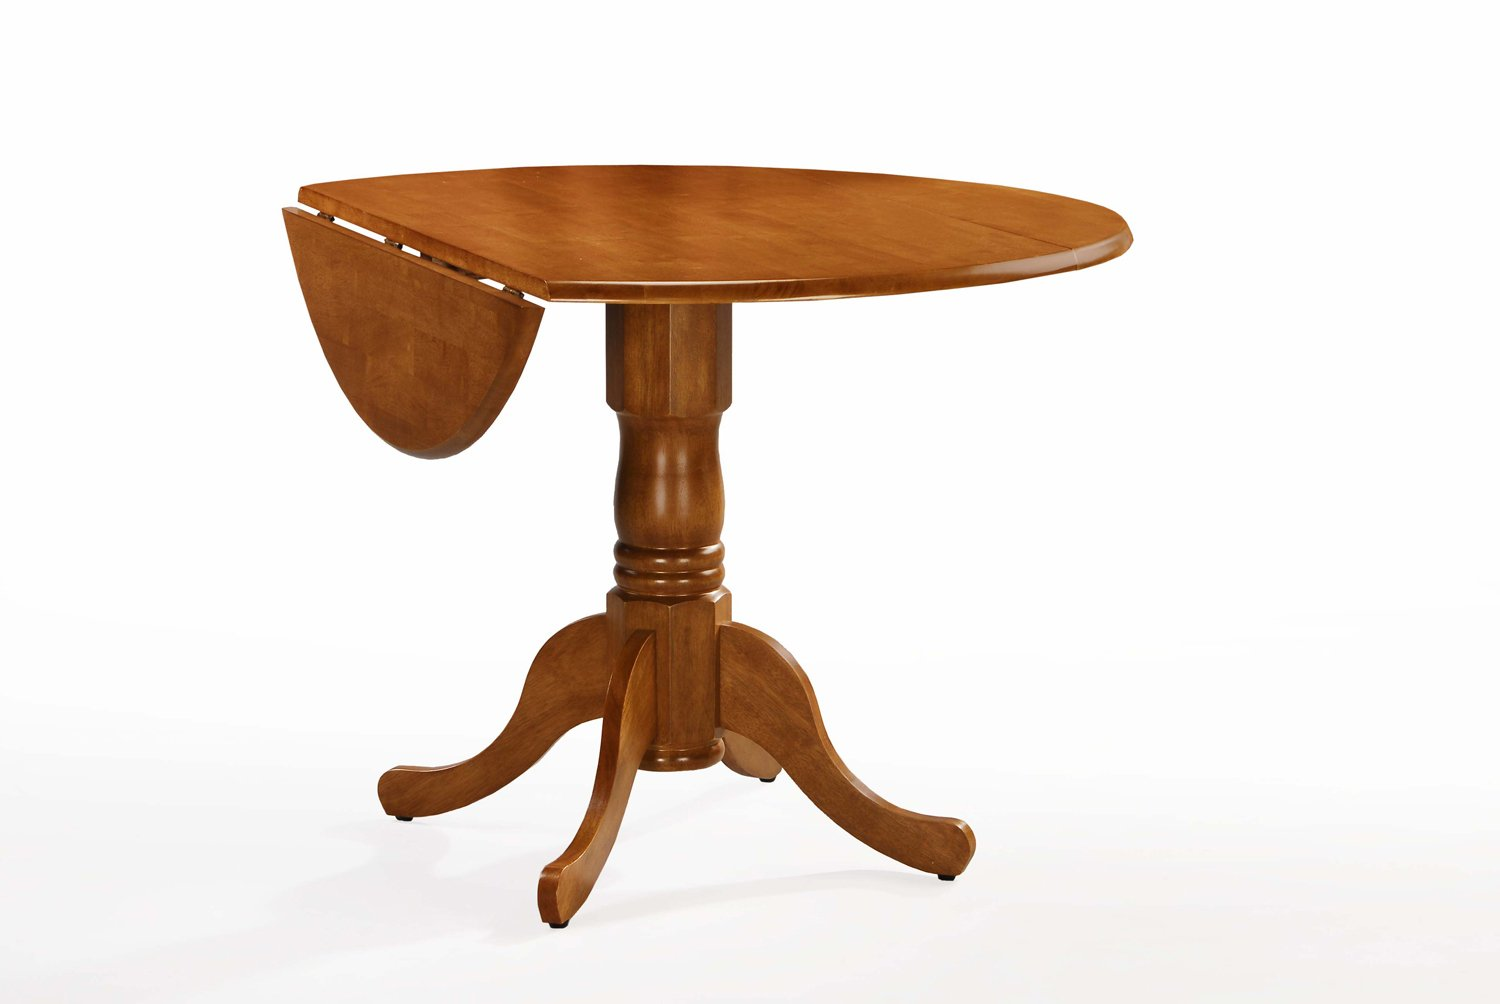 International Concepts T04-42DP 42-inch Round Dual Drop Leaf Ped Table, Oak by International Concepts